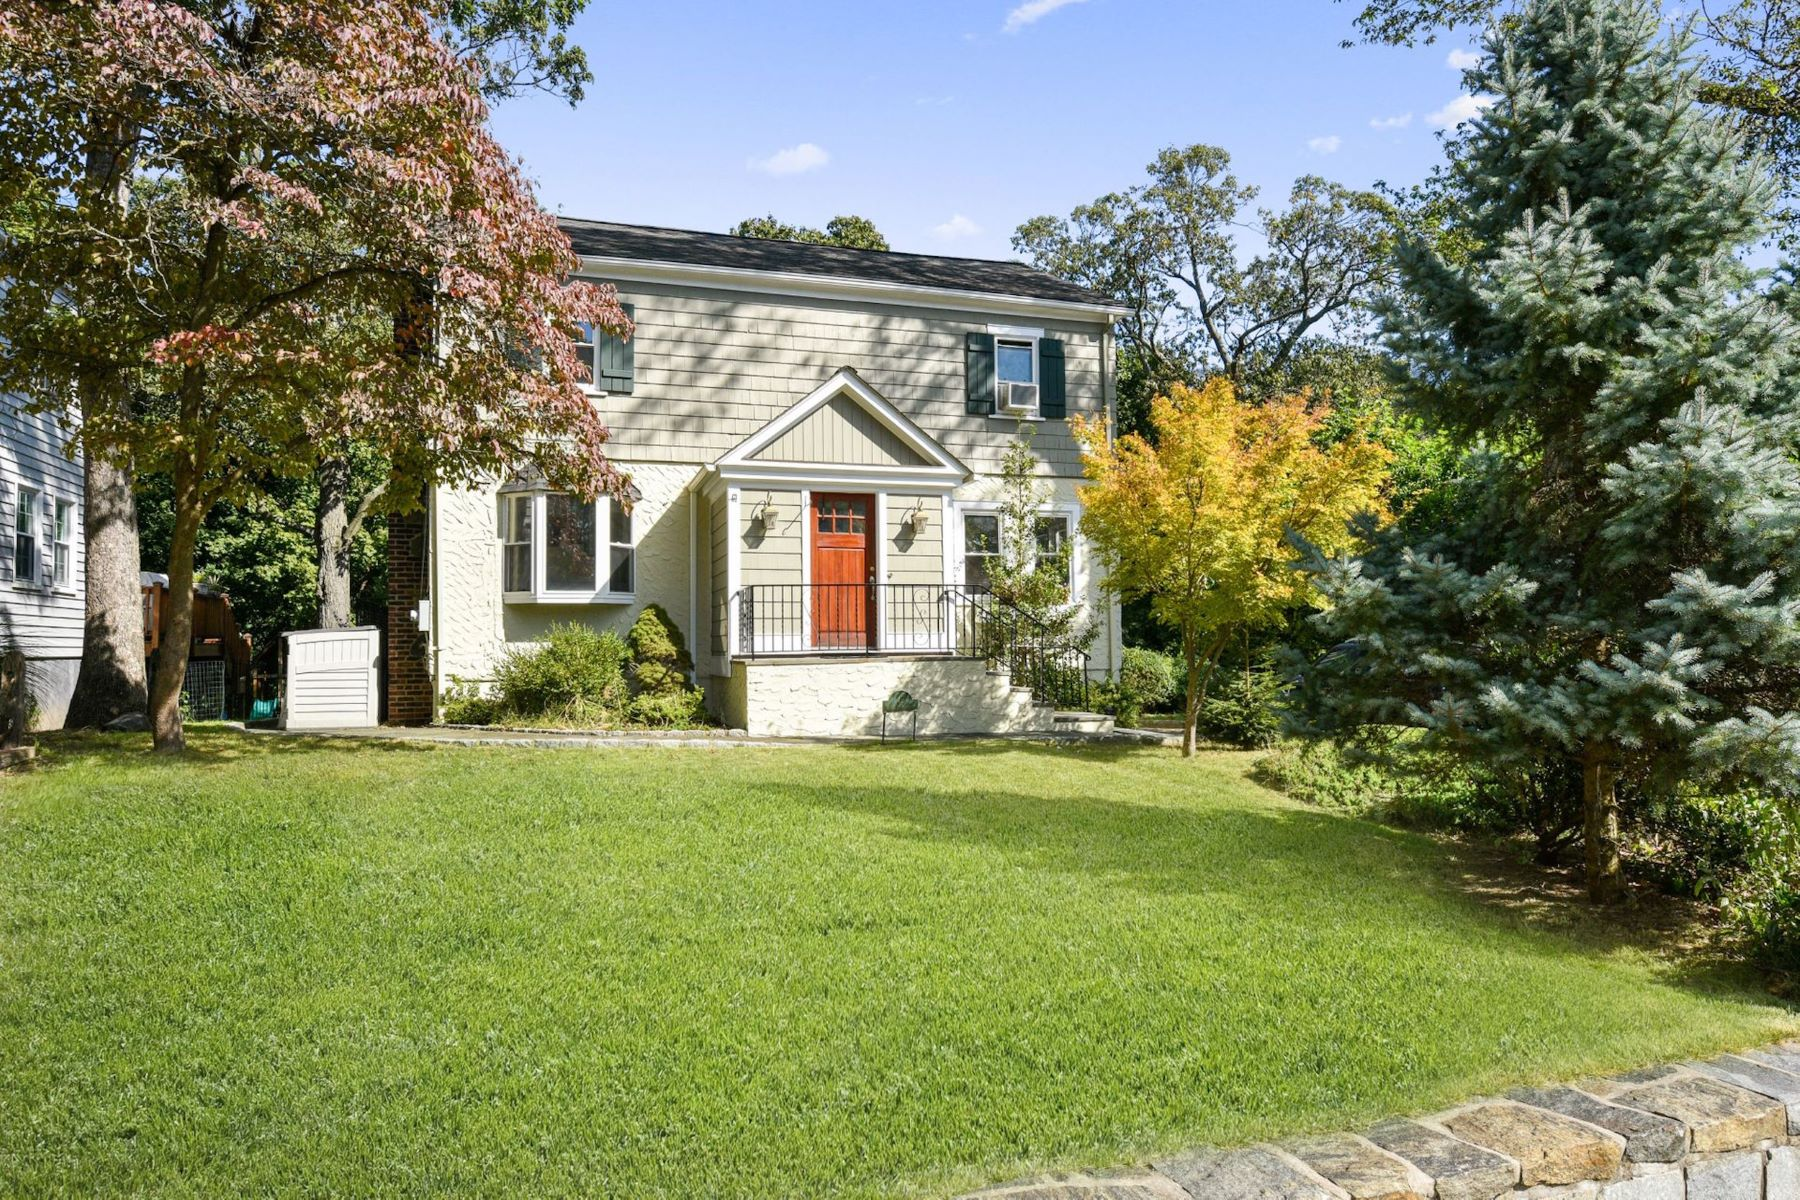 Single Family Homes for Sale at 49 Maplewood Avenue Greenburgh, New York 10522 United States